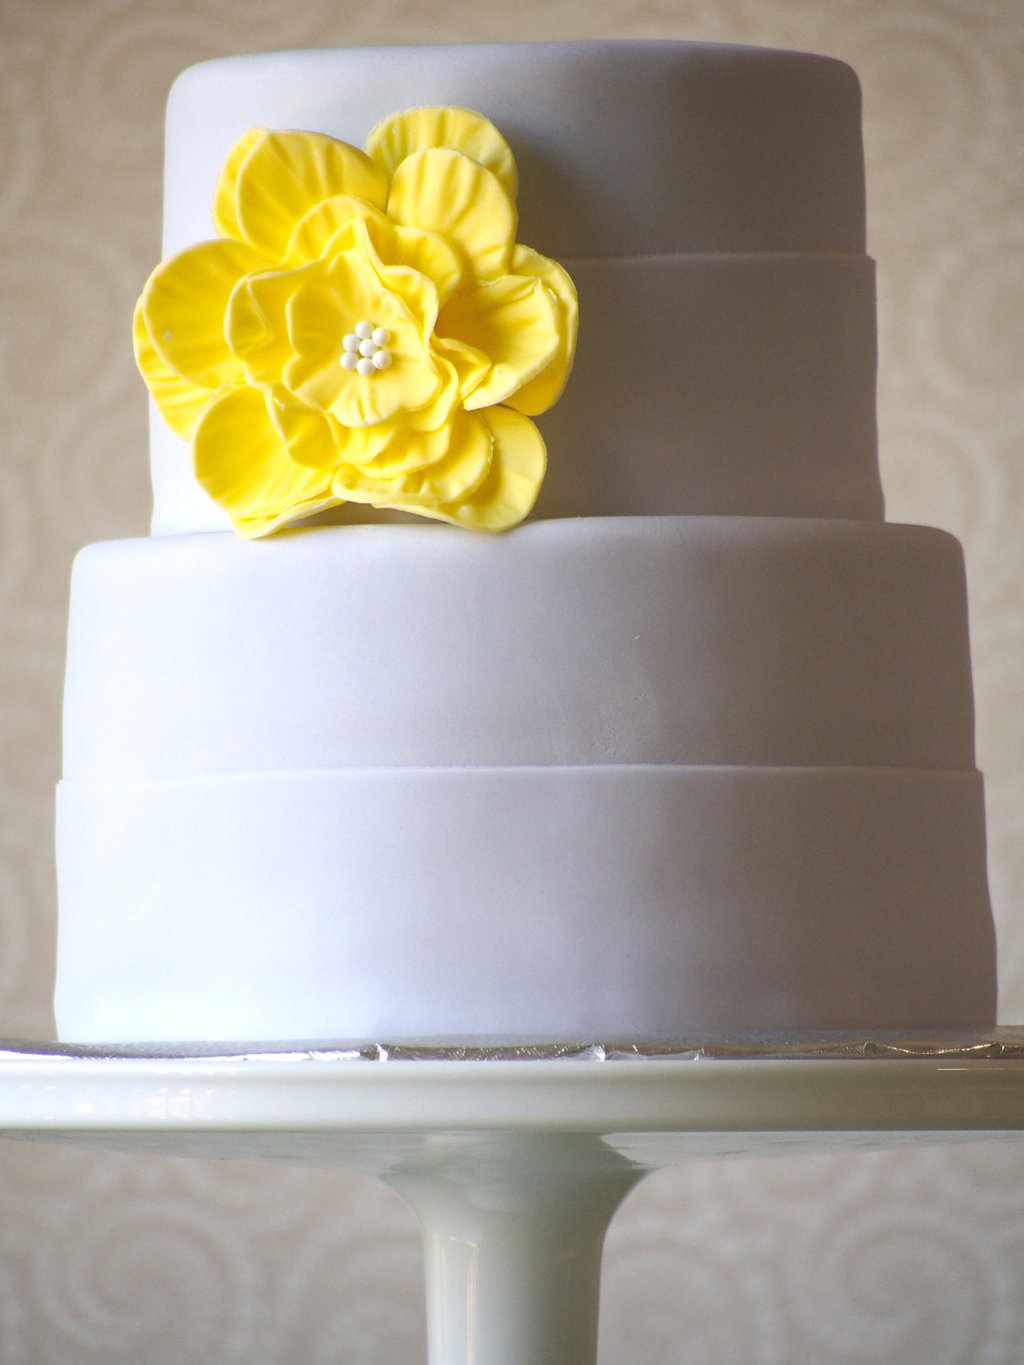 Fondant-wedding-finds-to-add-sweetness-to-handmade-weddings-yellow-cake-flower.full